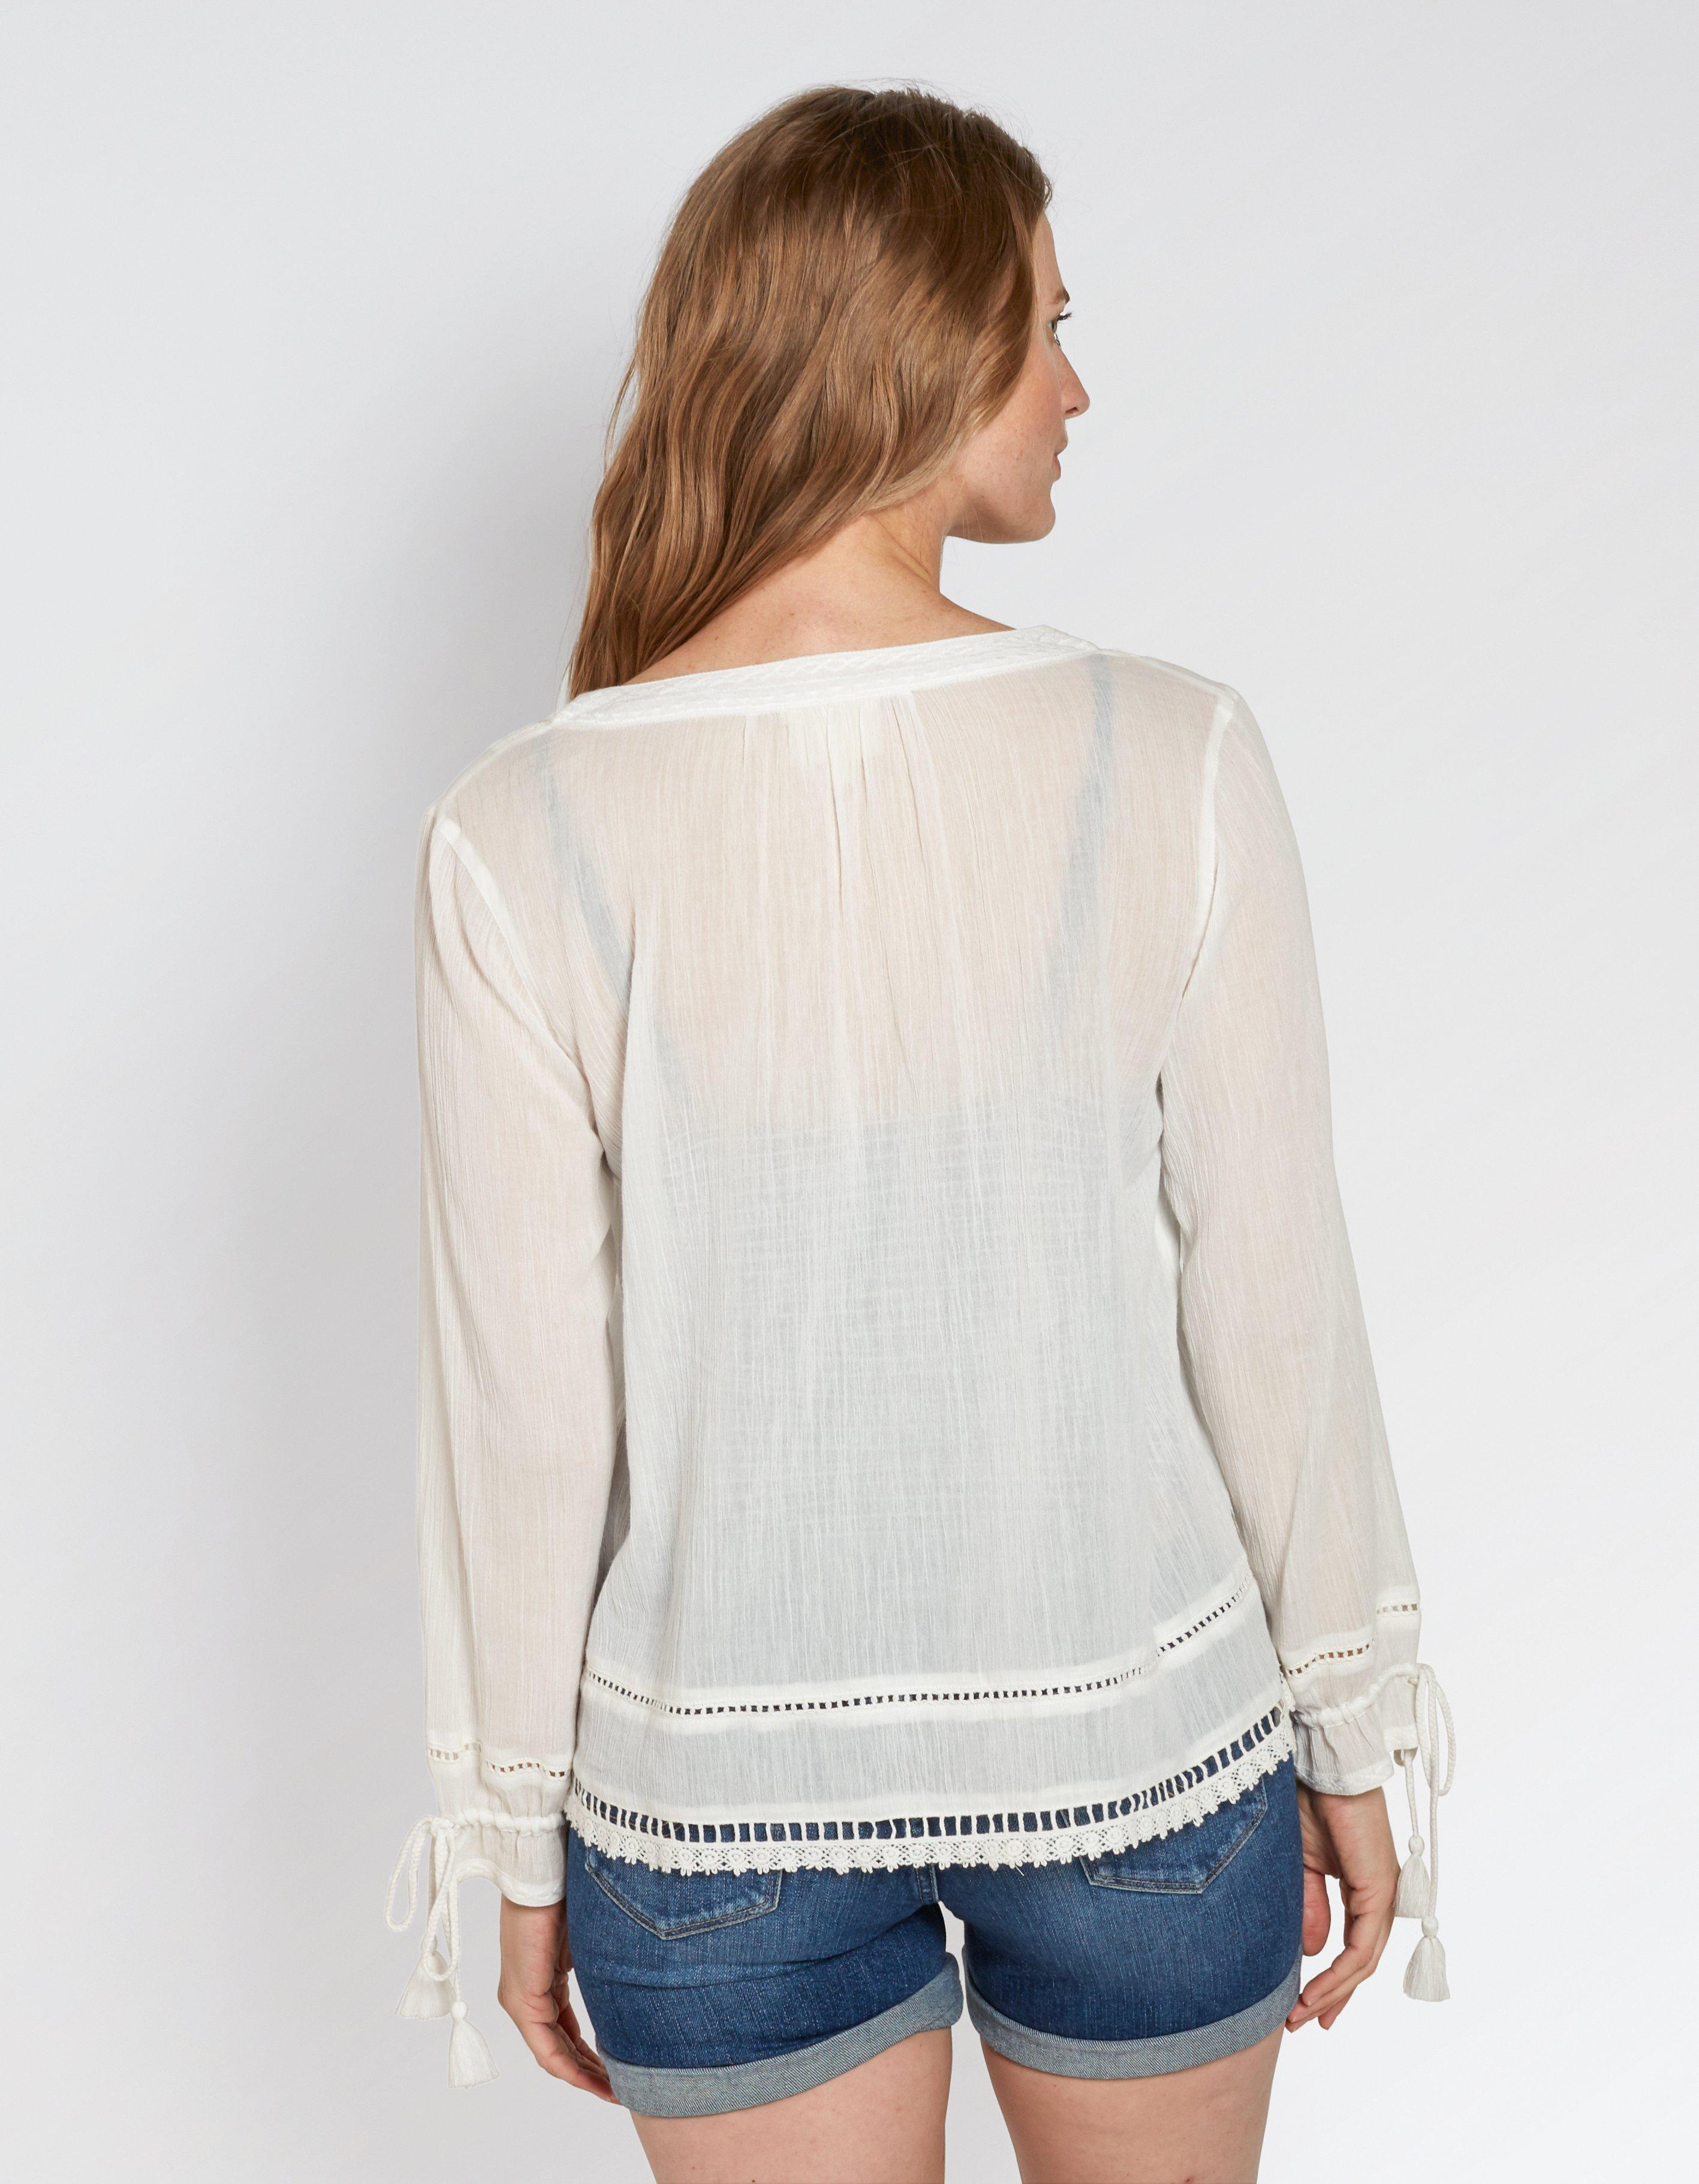 Whitby Blouse